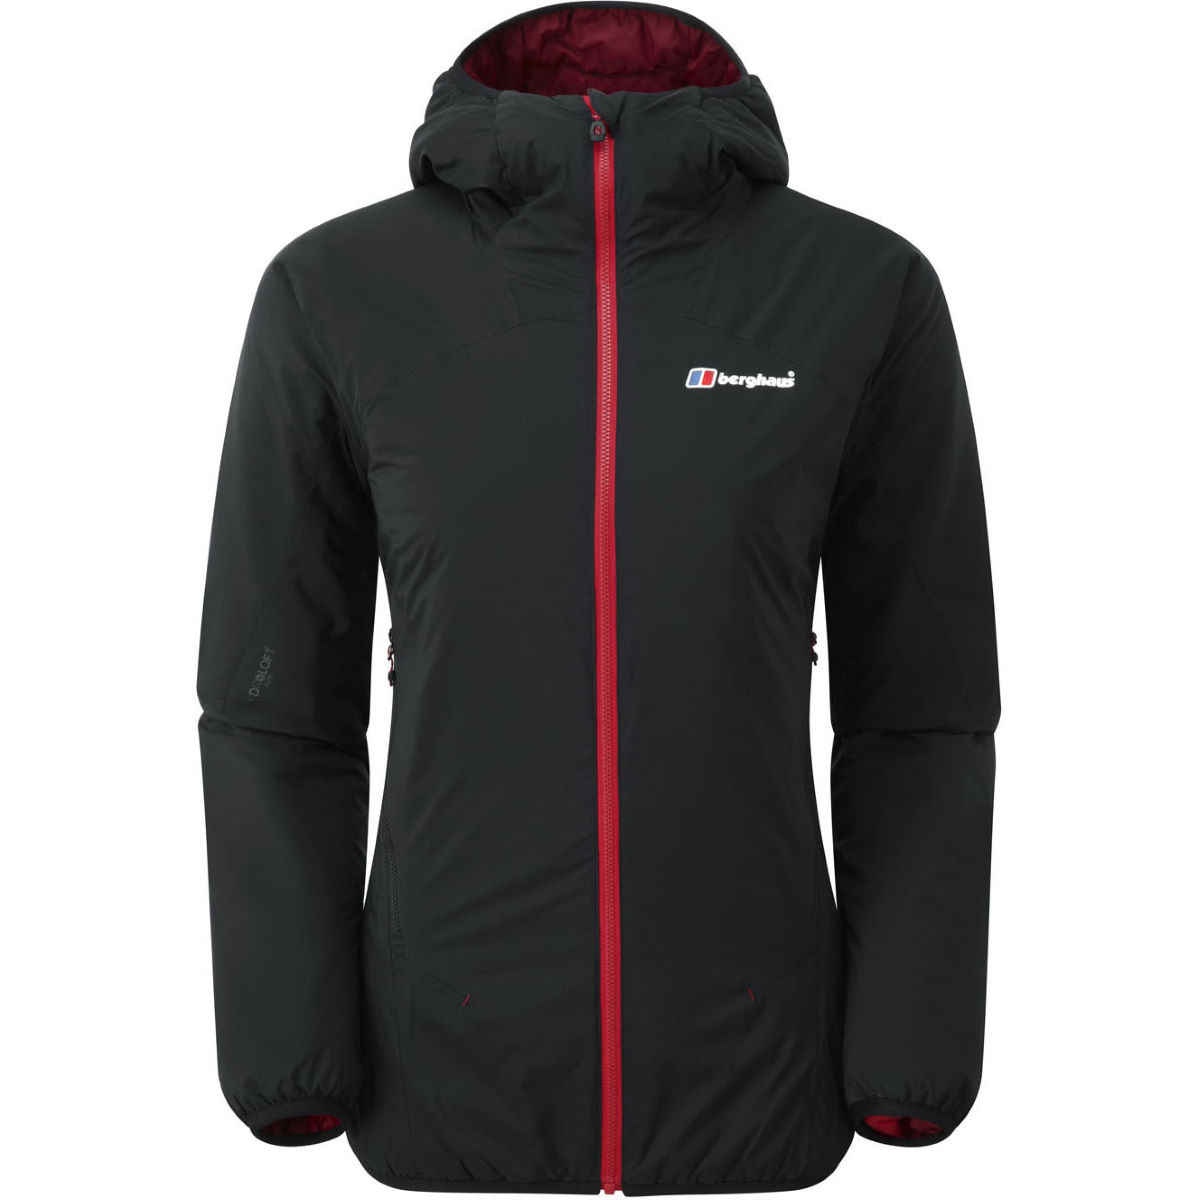 Berghaus Womens Reversa Jacket   Insulated Jackets